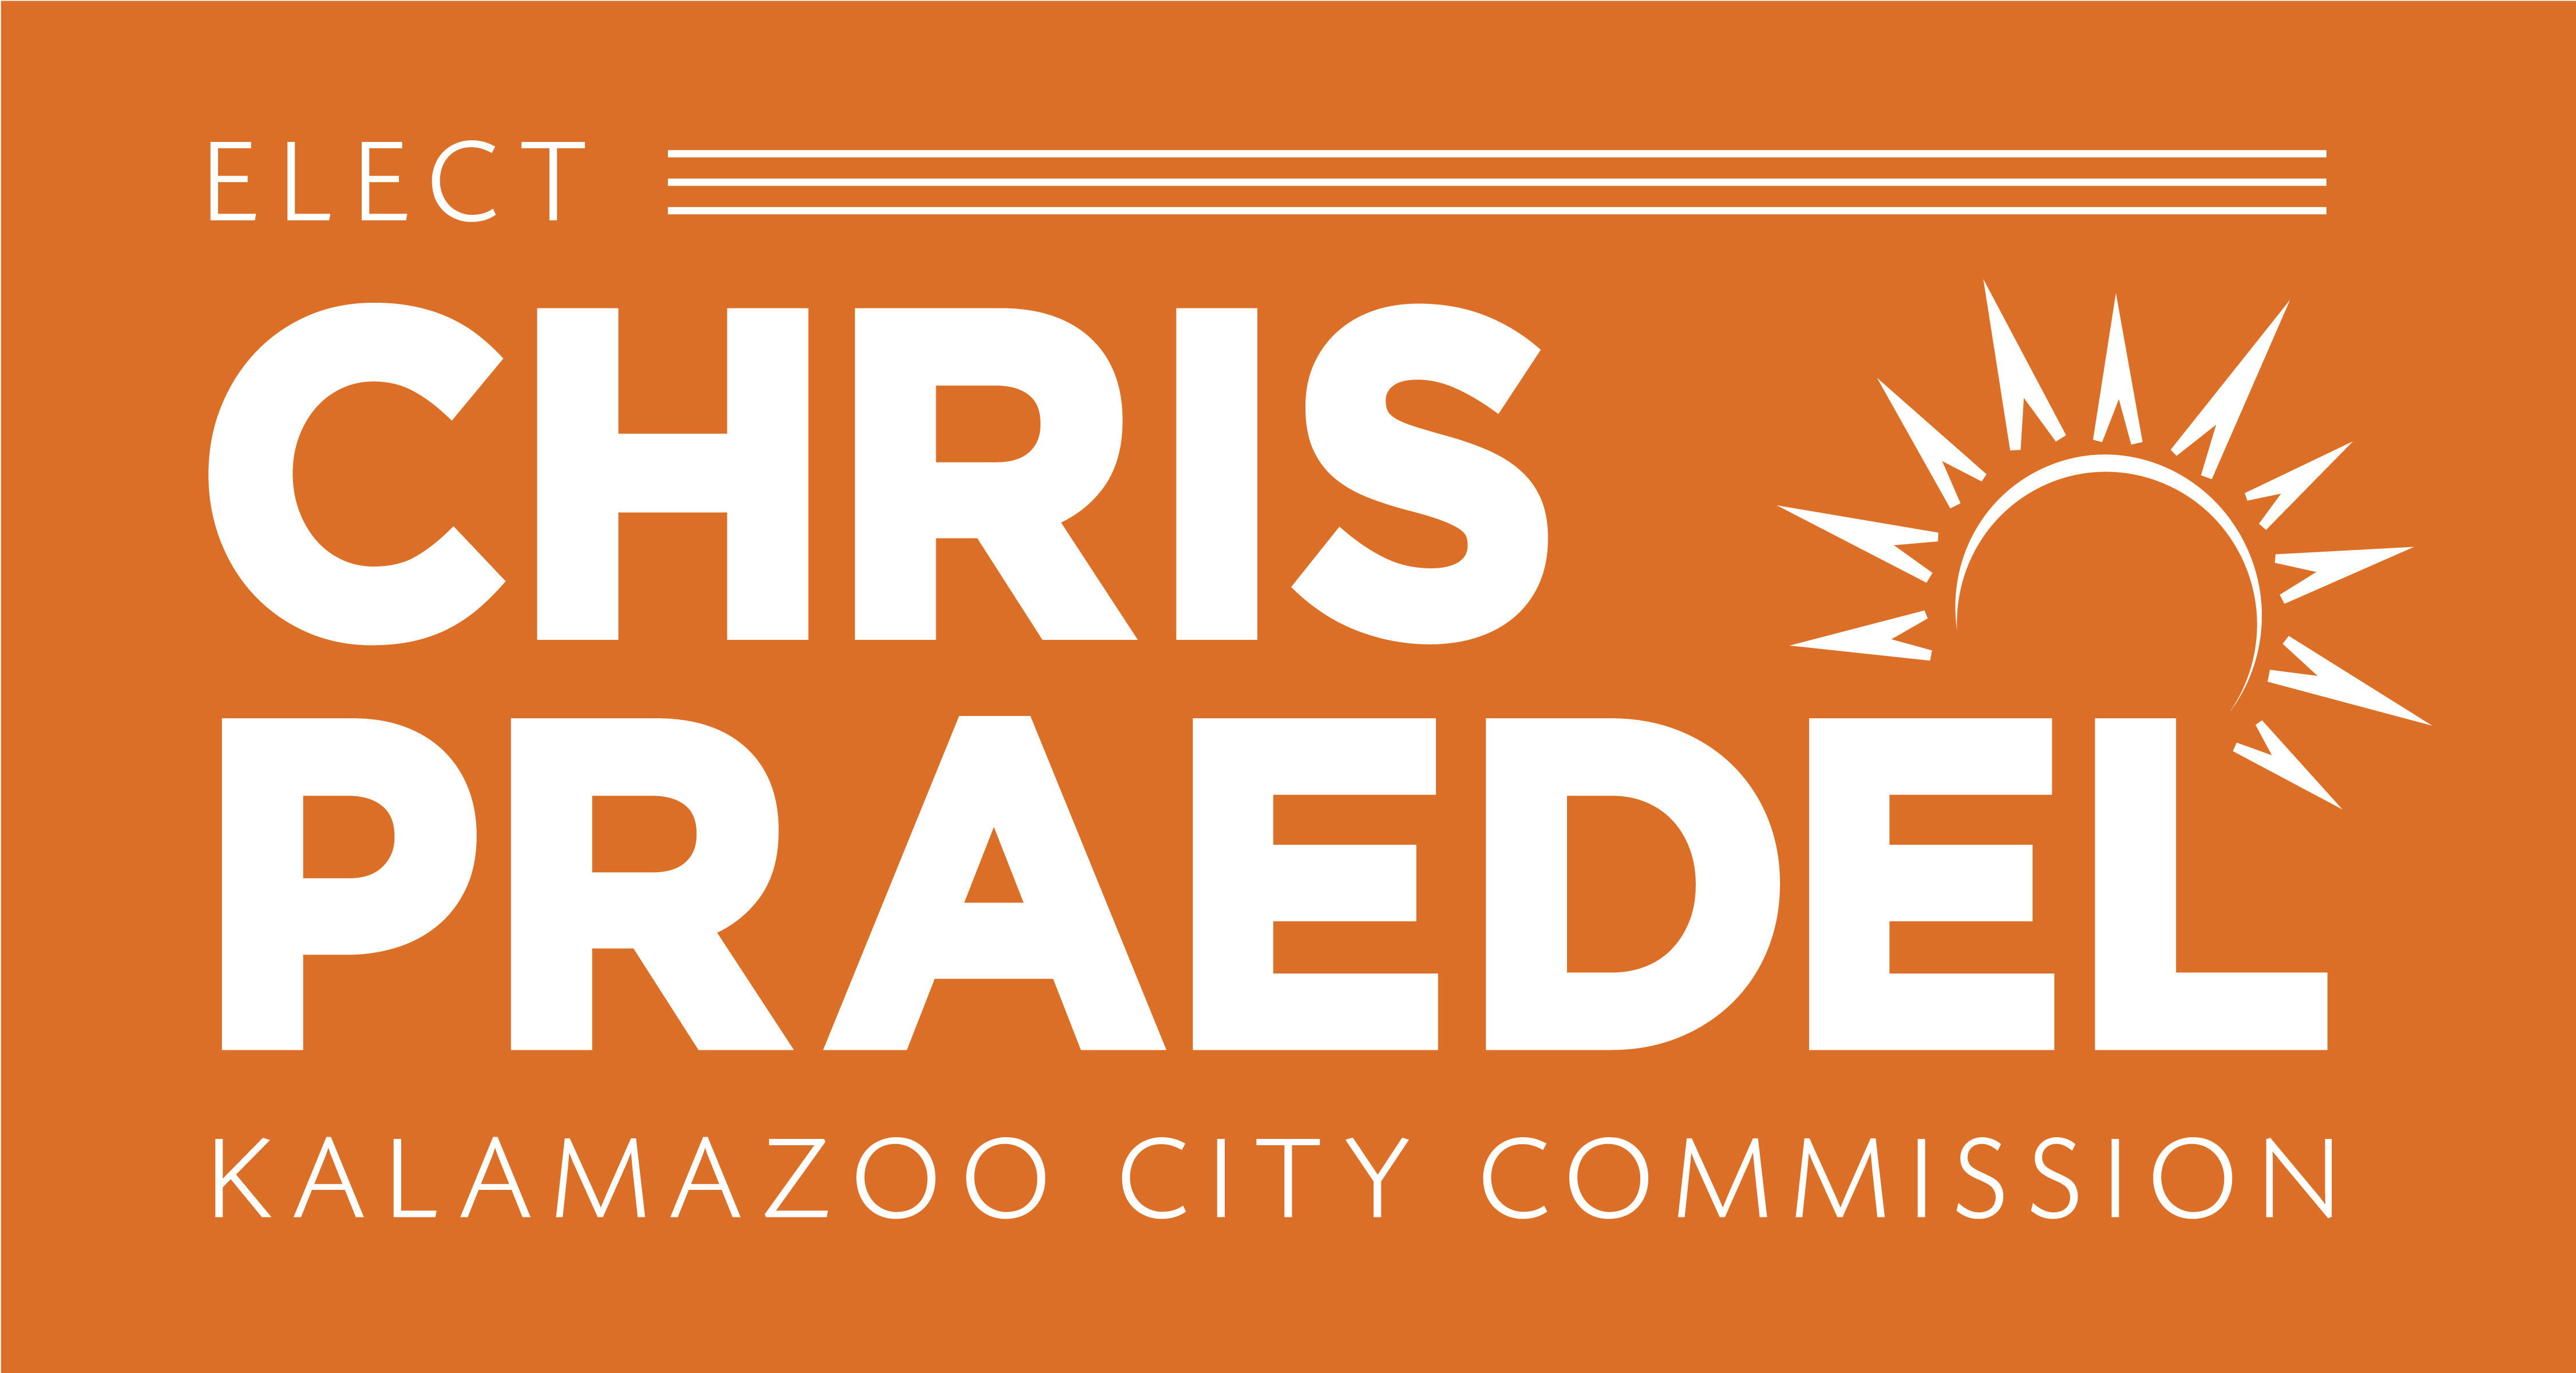 Chris Praedel for Kalamazoo City Commission